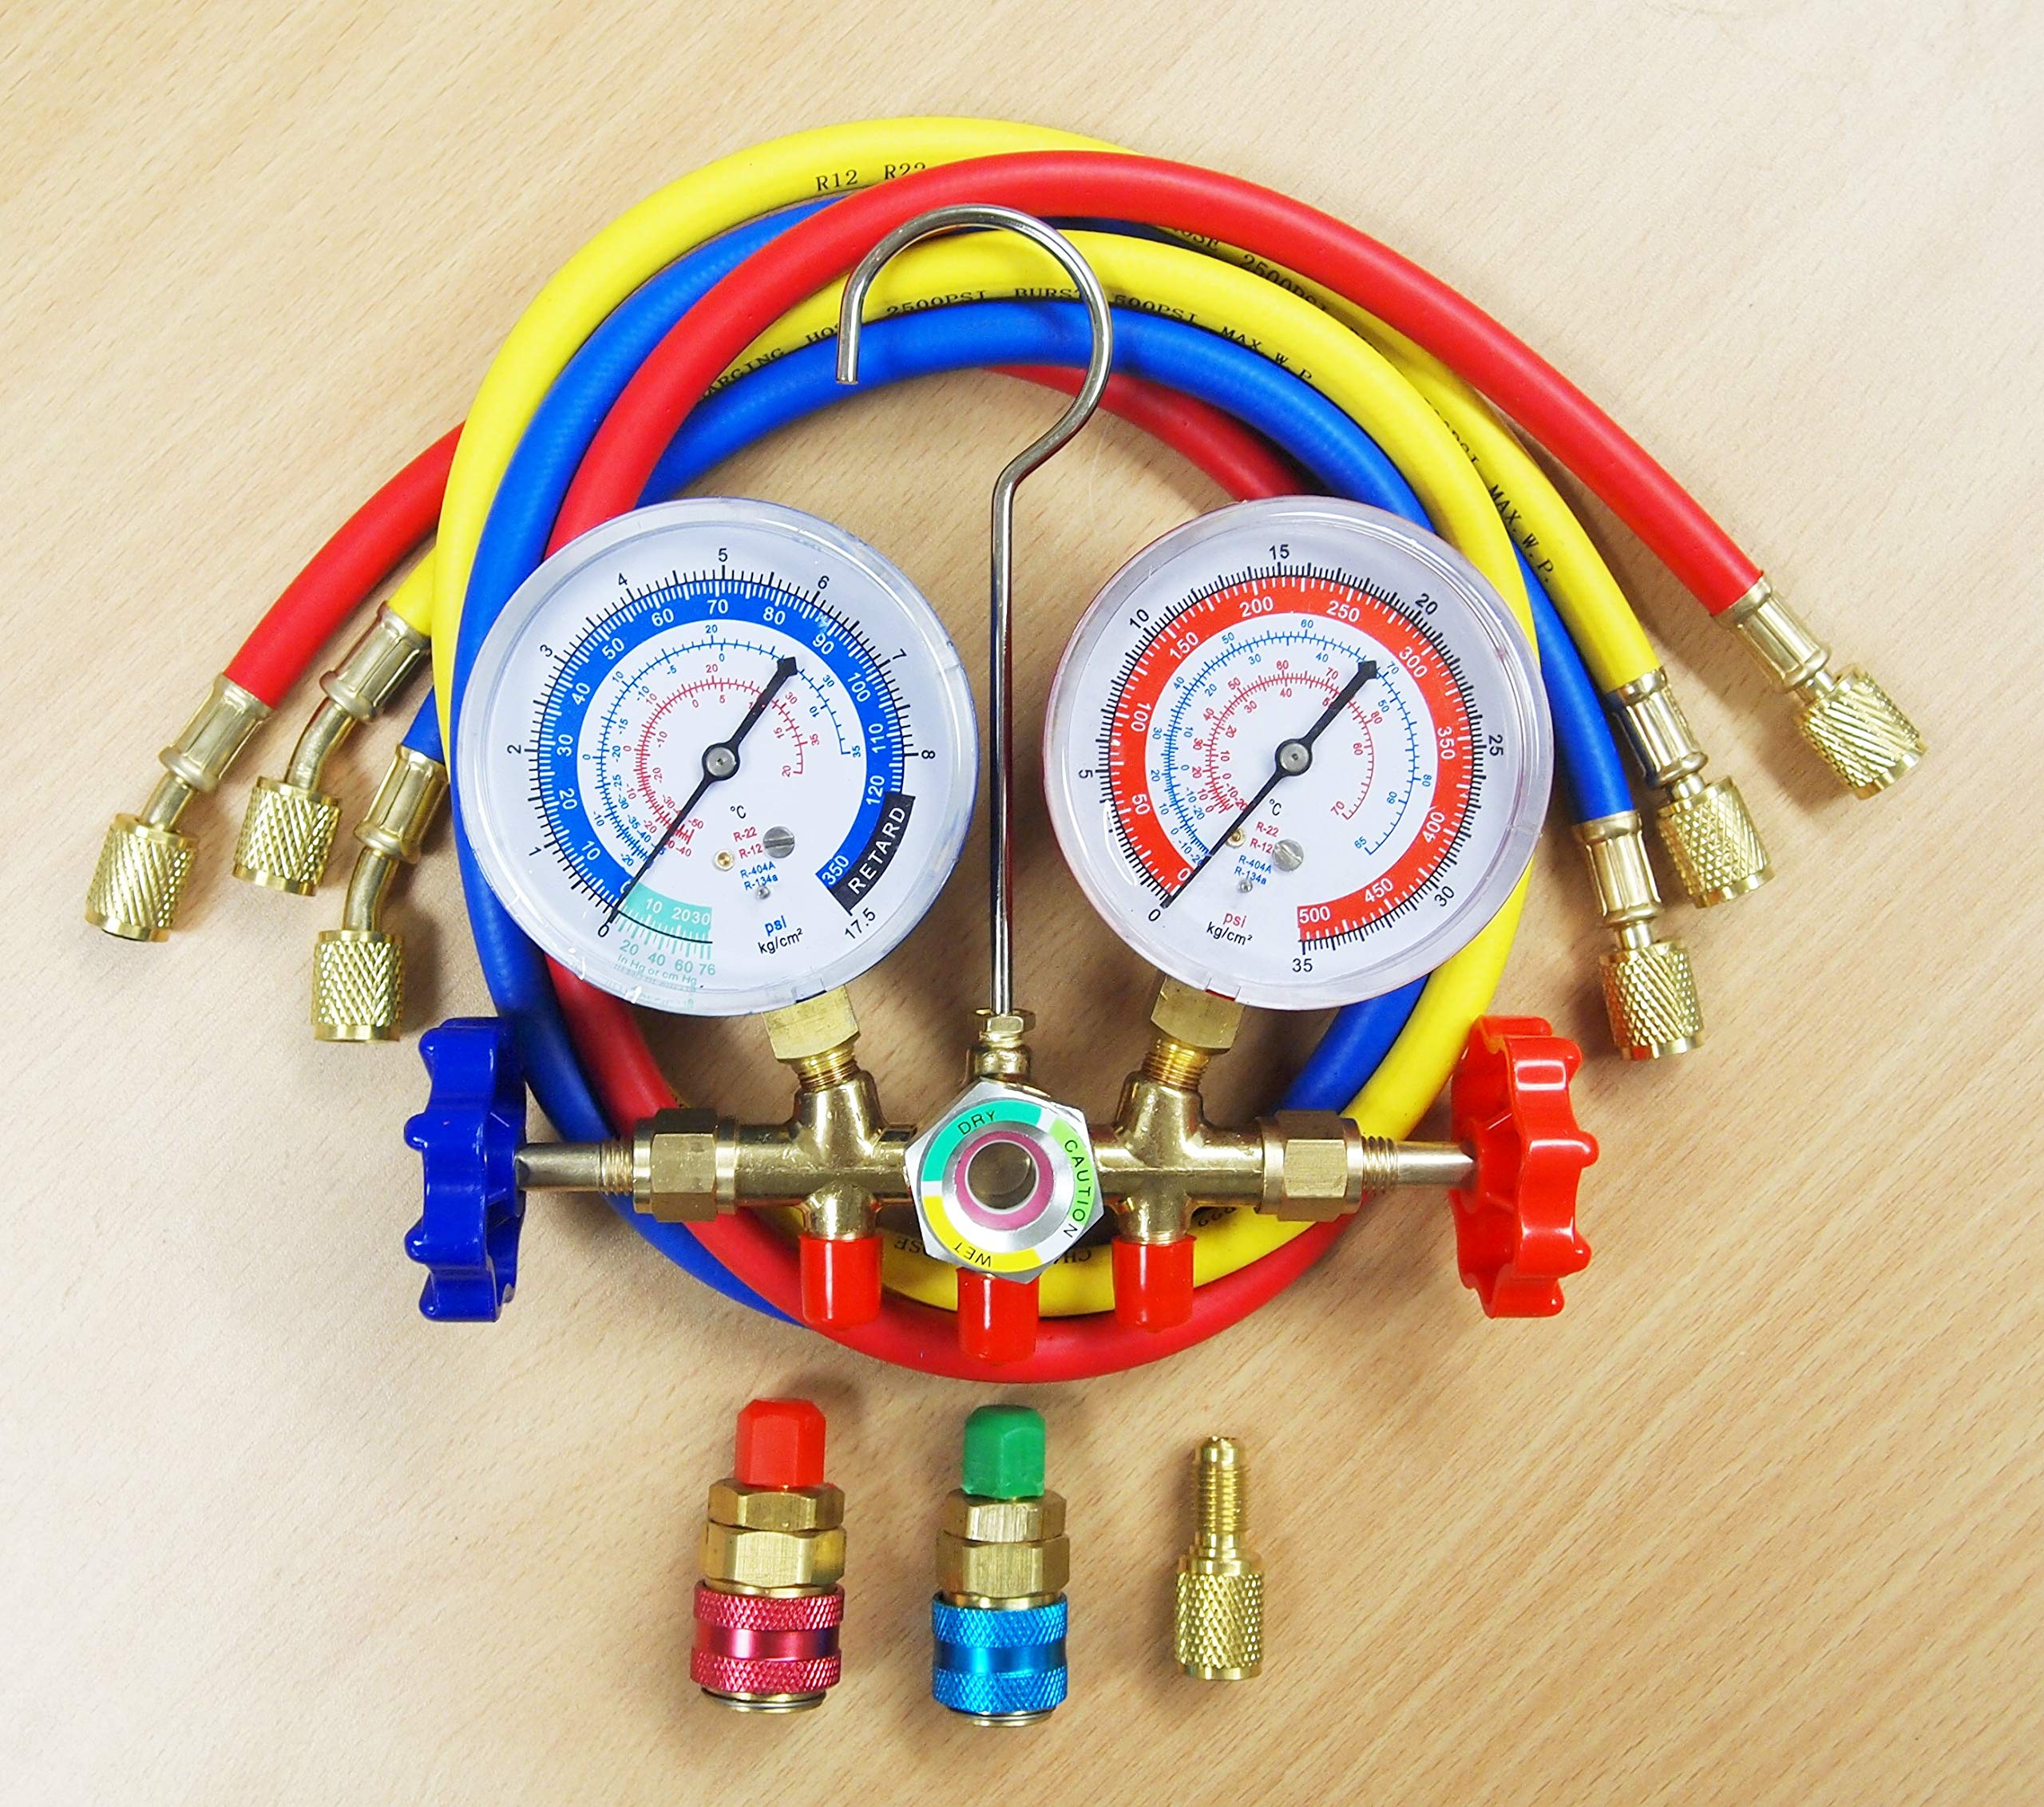 R12 R22 R134a R404a Manifold Gauge Set 3'' Gauge HVAC A/C Refrigeration Charging Service